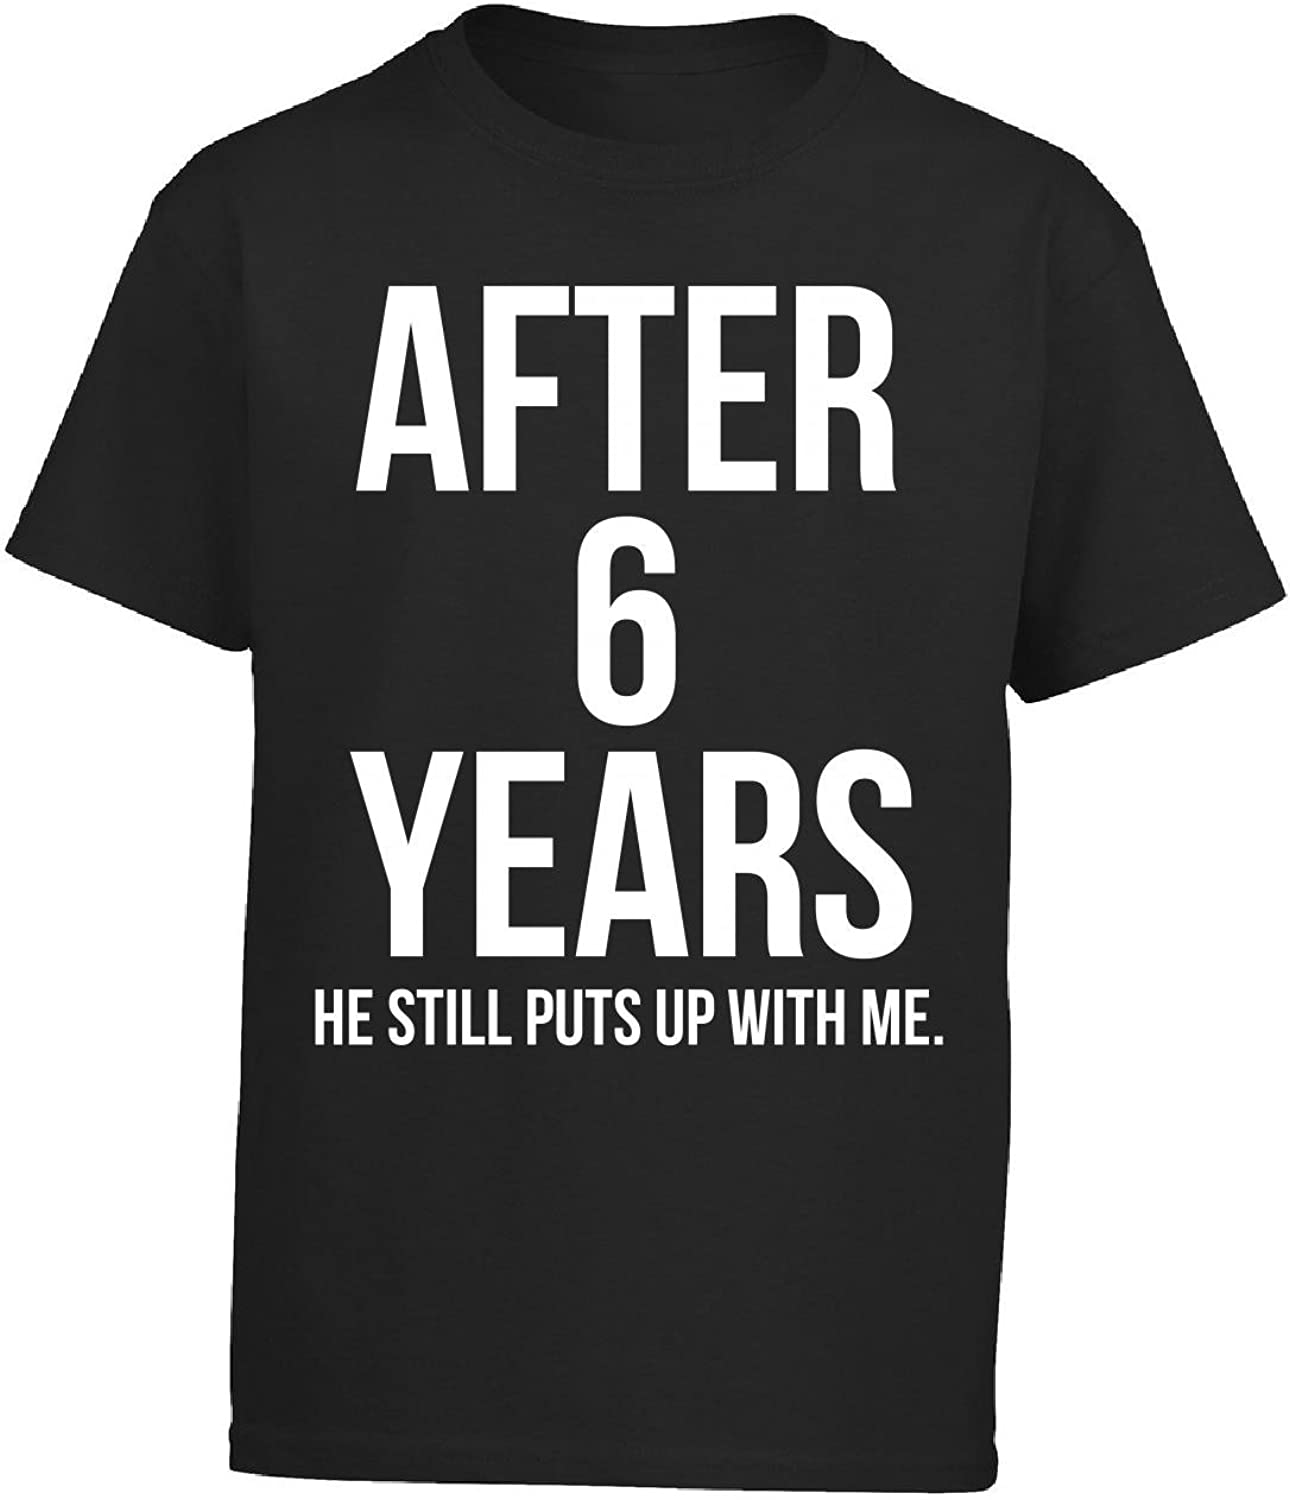 Boy Boys T-shirt 6th Anniversary After 6 Years He Still Puts Up With Me